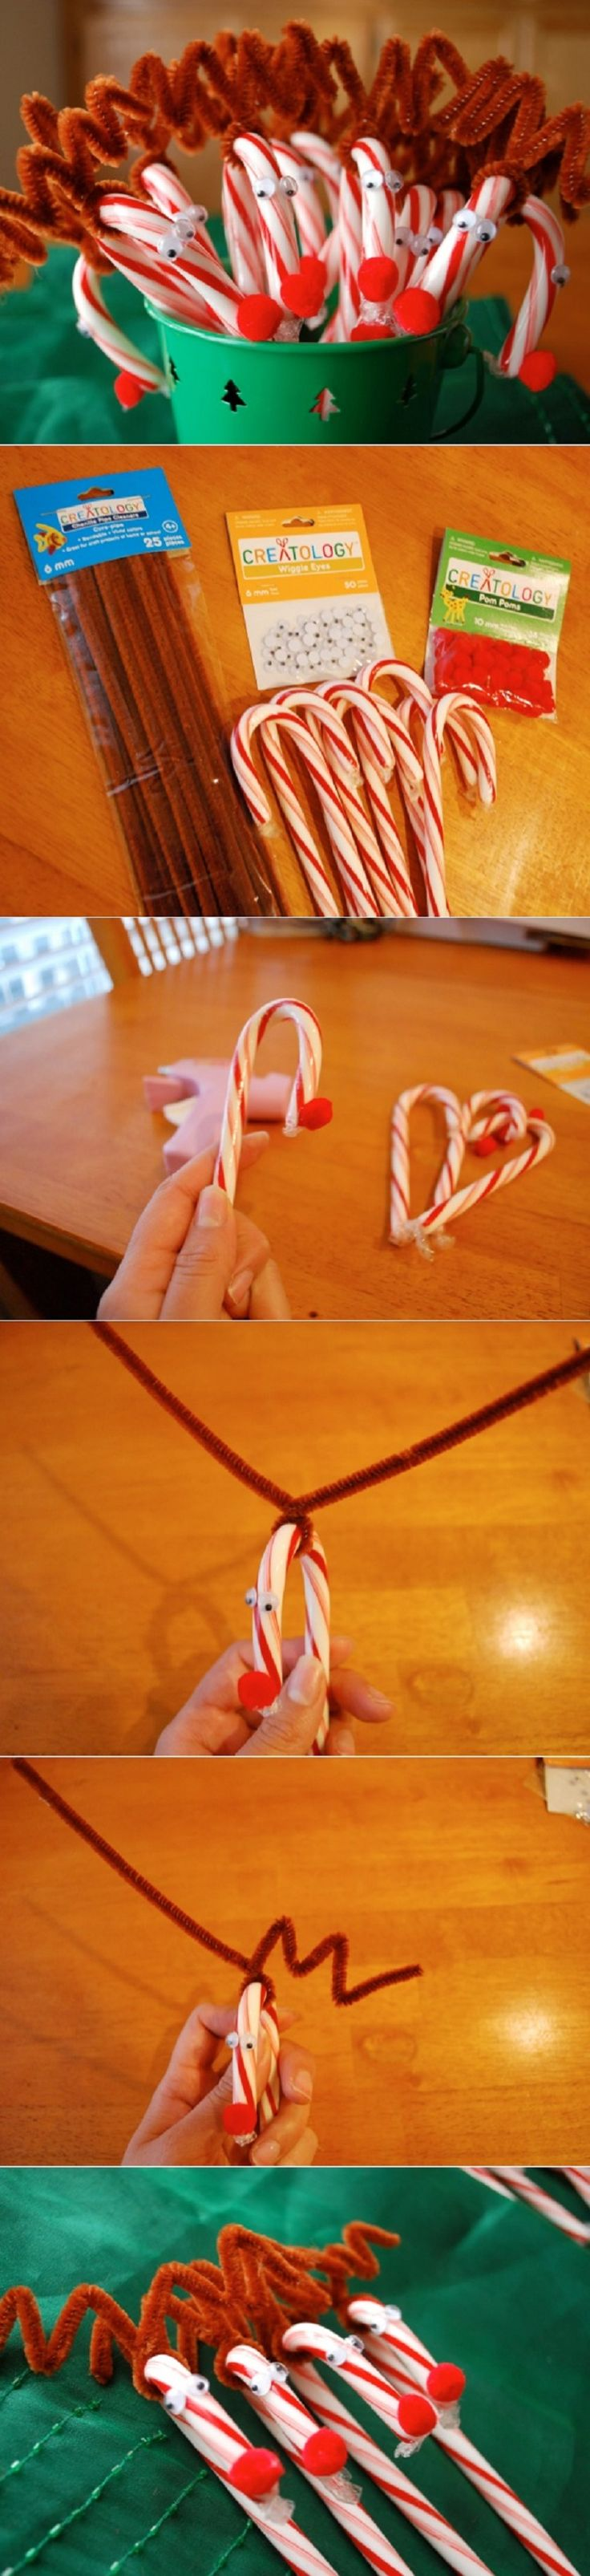 Rudolph Candy Canes - 20 Jaw-Dropping DIY Christmas Party Decorations | GleamItUp